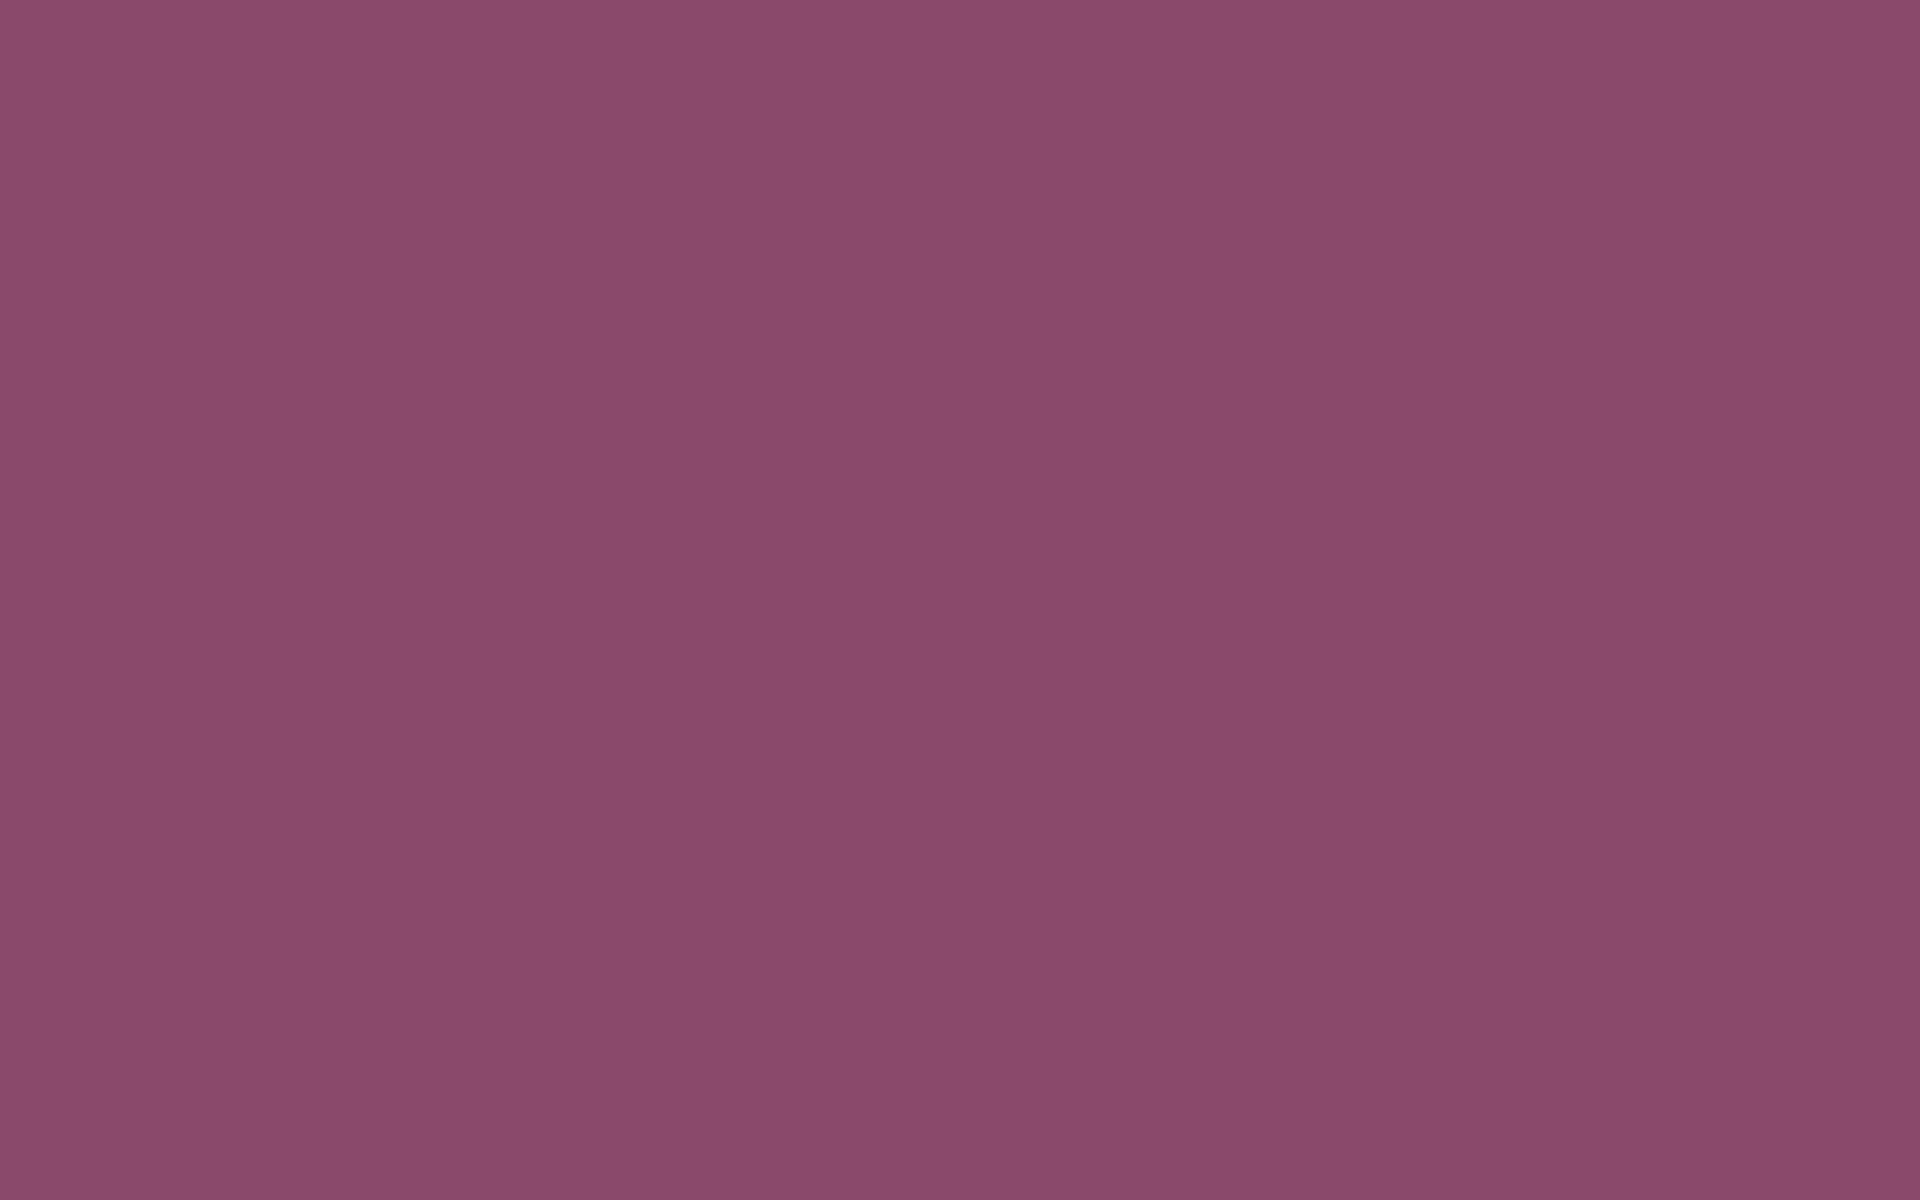 1920x1200 Twilight Lavender Solid Color Background